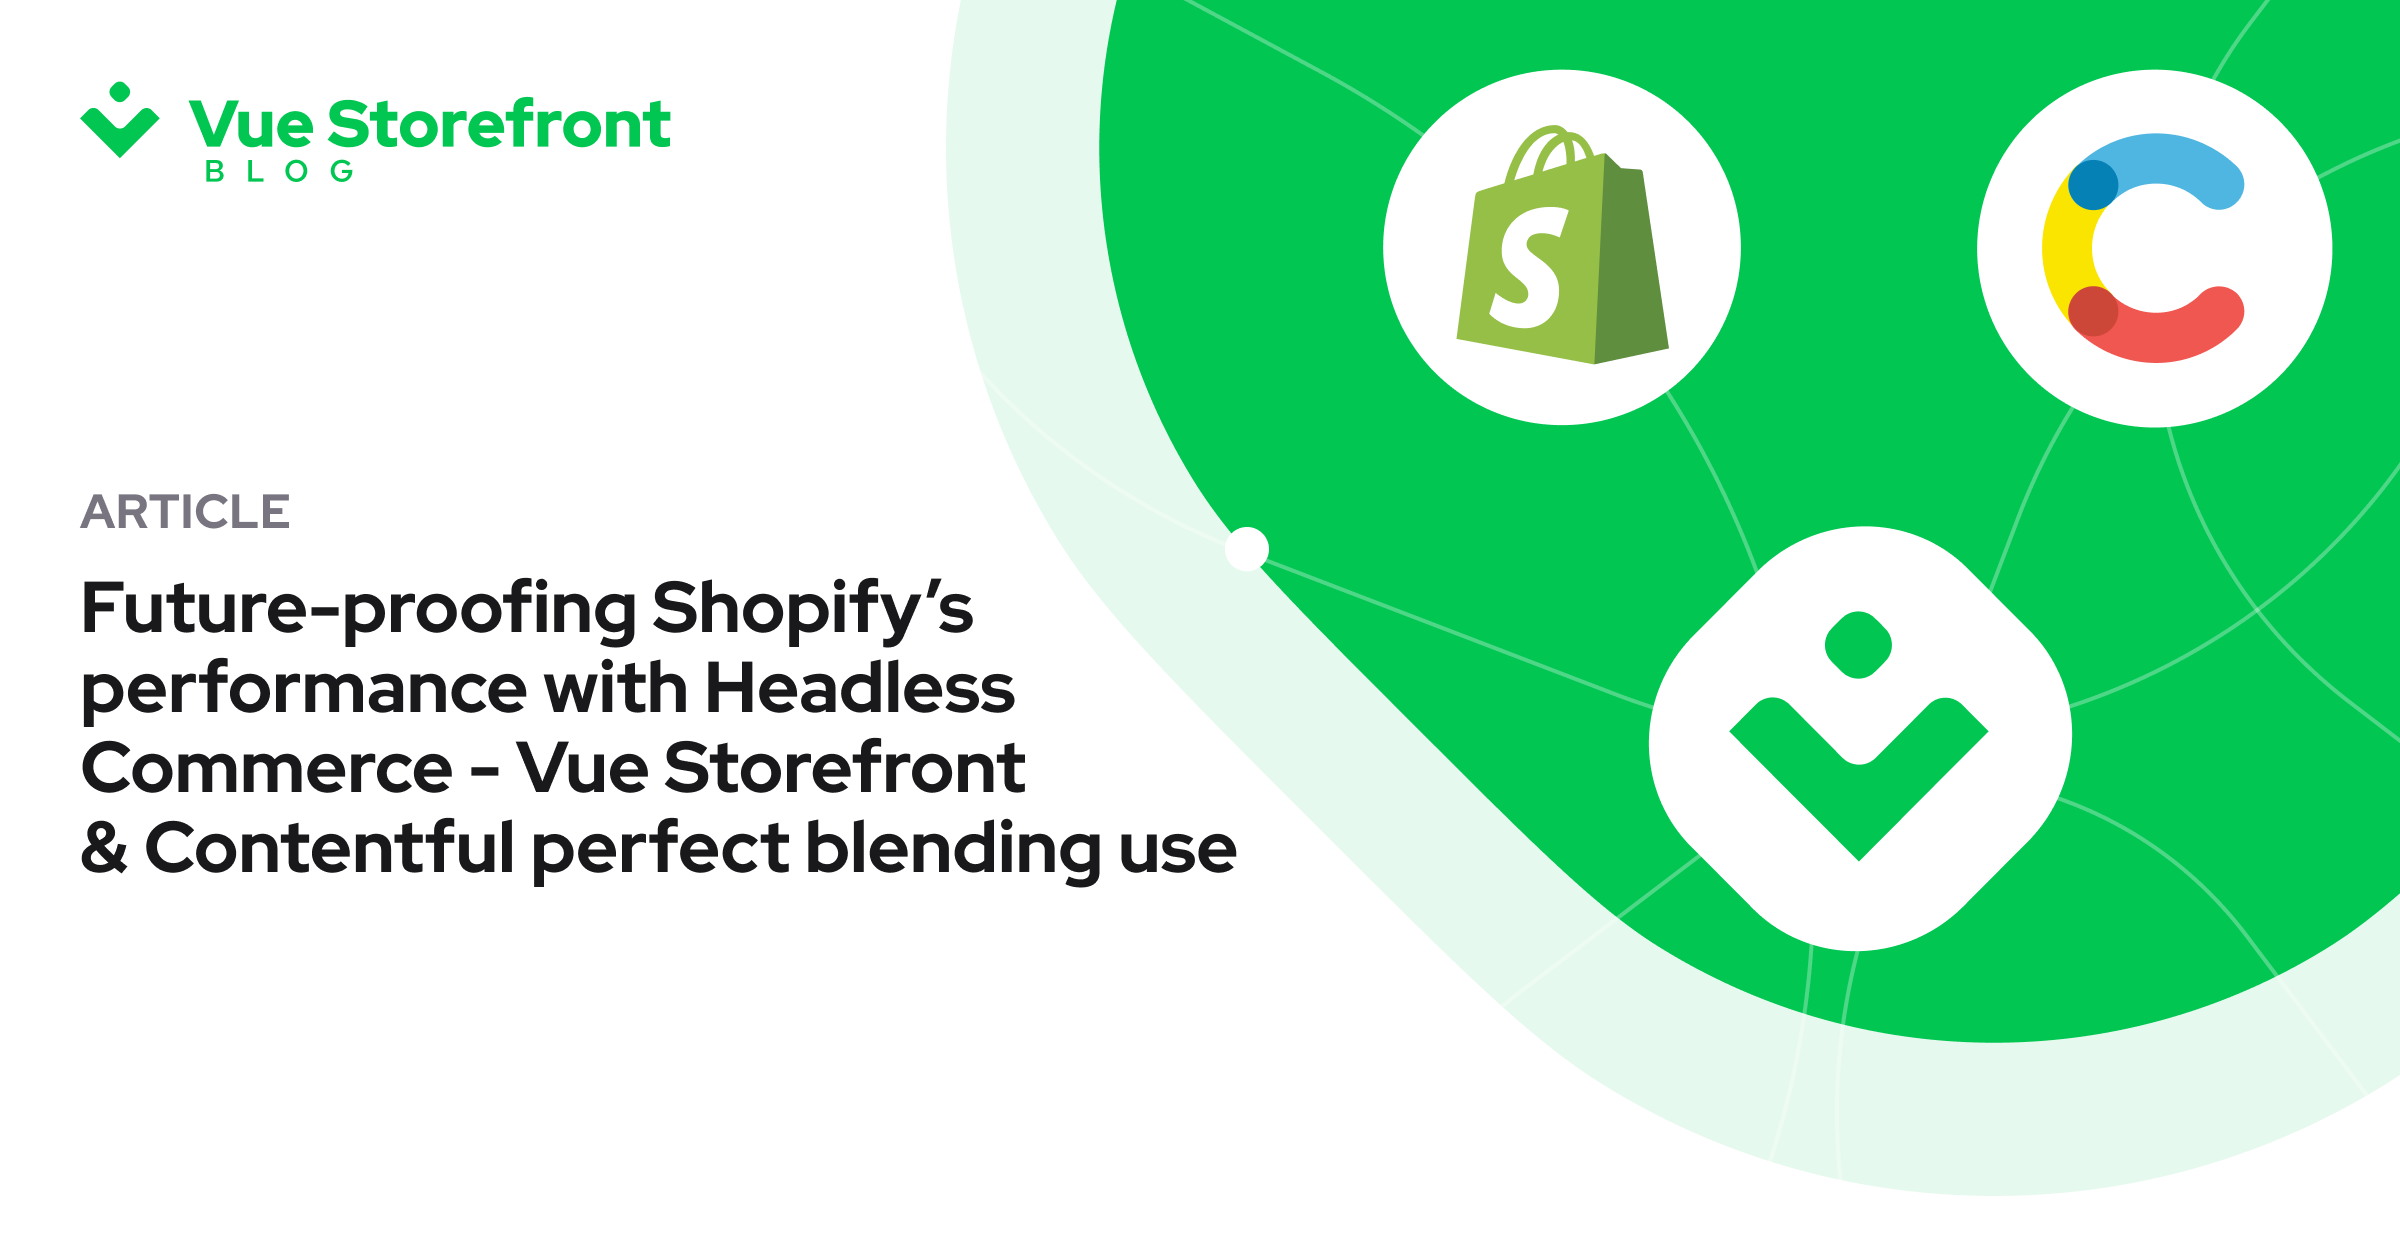 Future-proofing Shopify's performance with Headless Commerce – Vue Storefront & Contentful perfect blending use